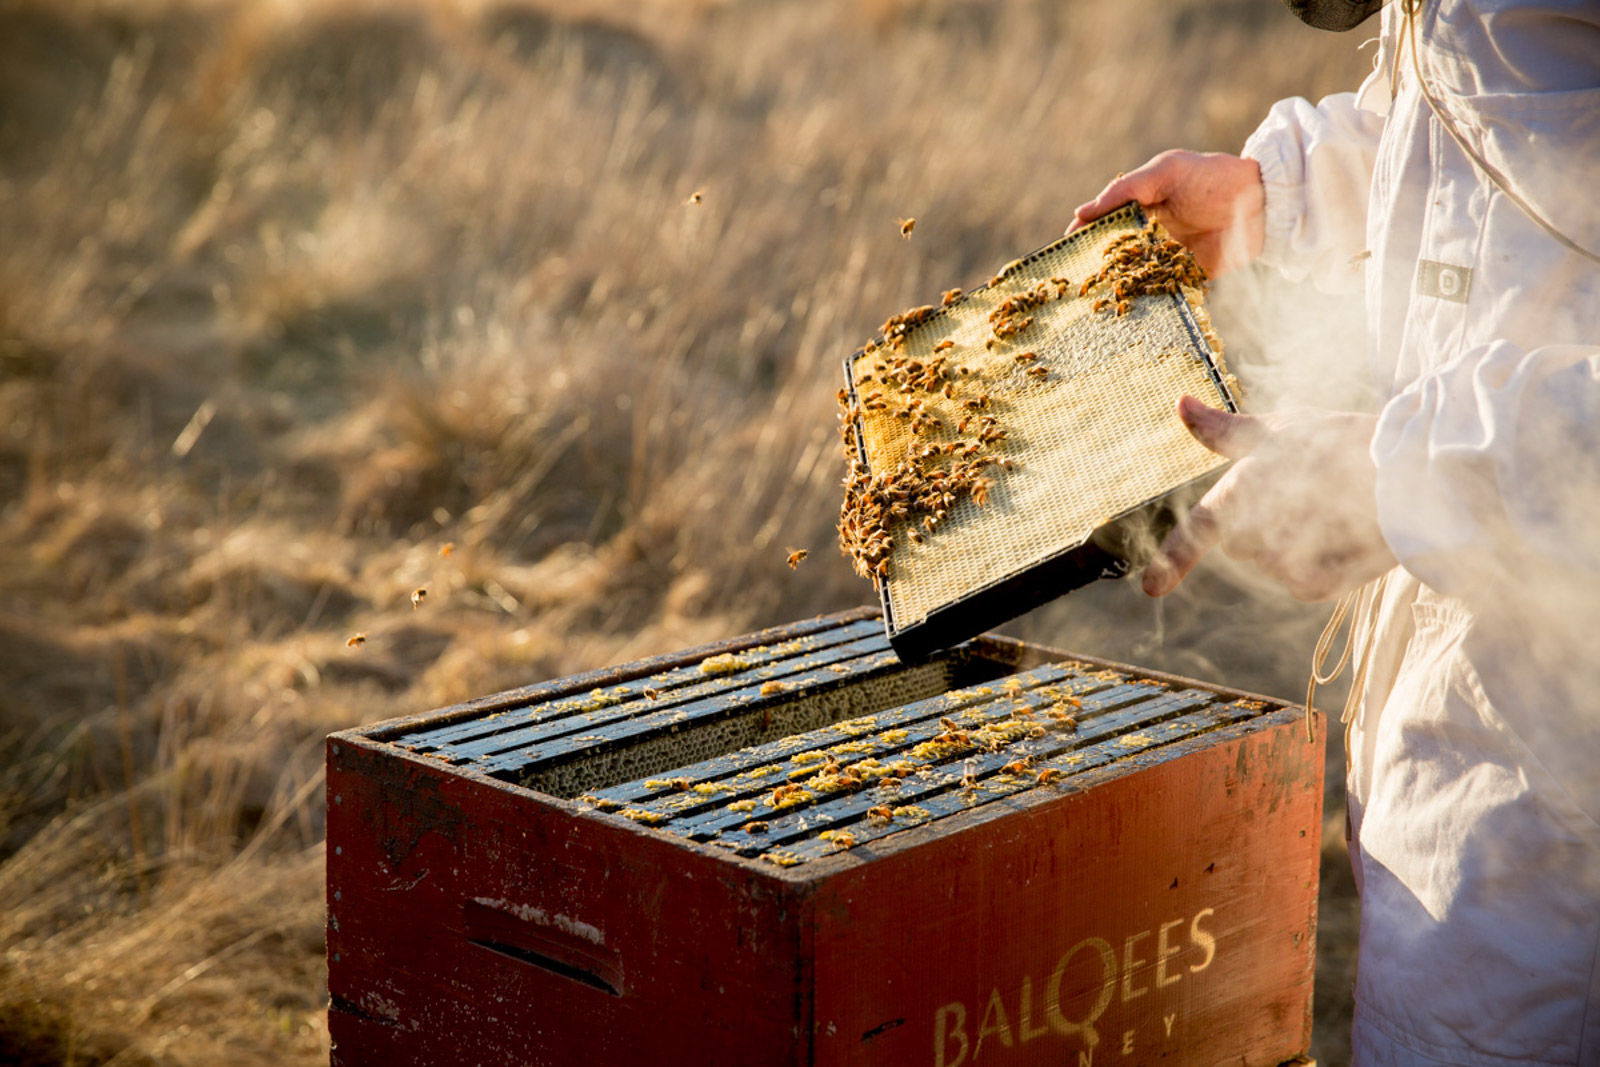 beekeeper holding honeycomb straight from the hive in rural New Zealand